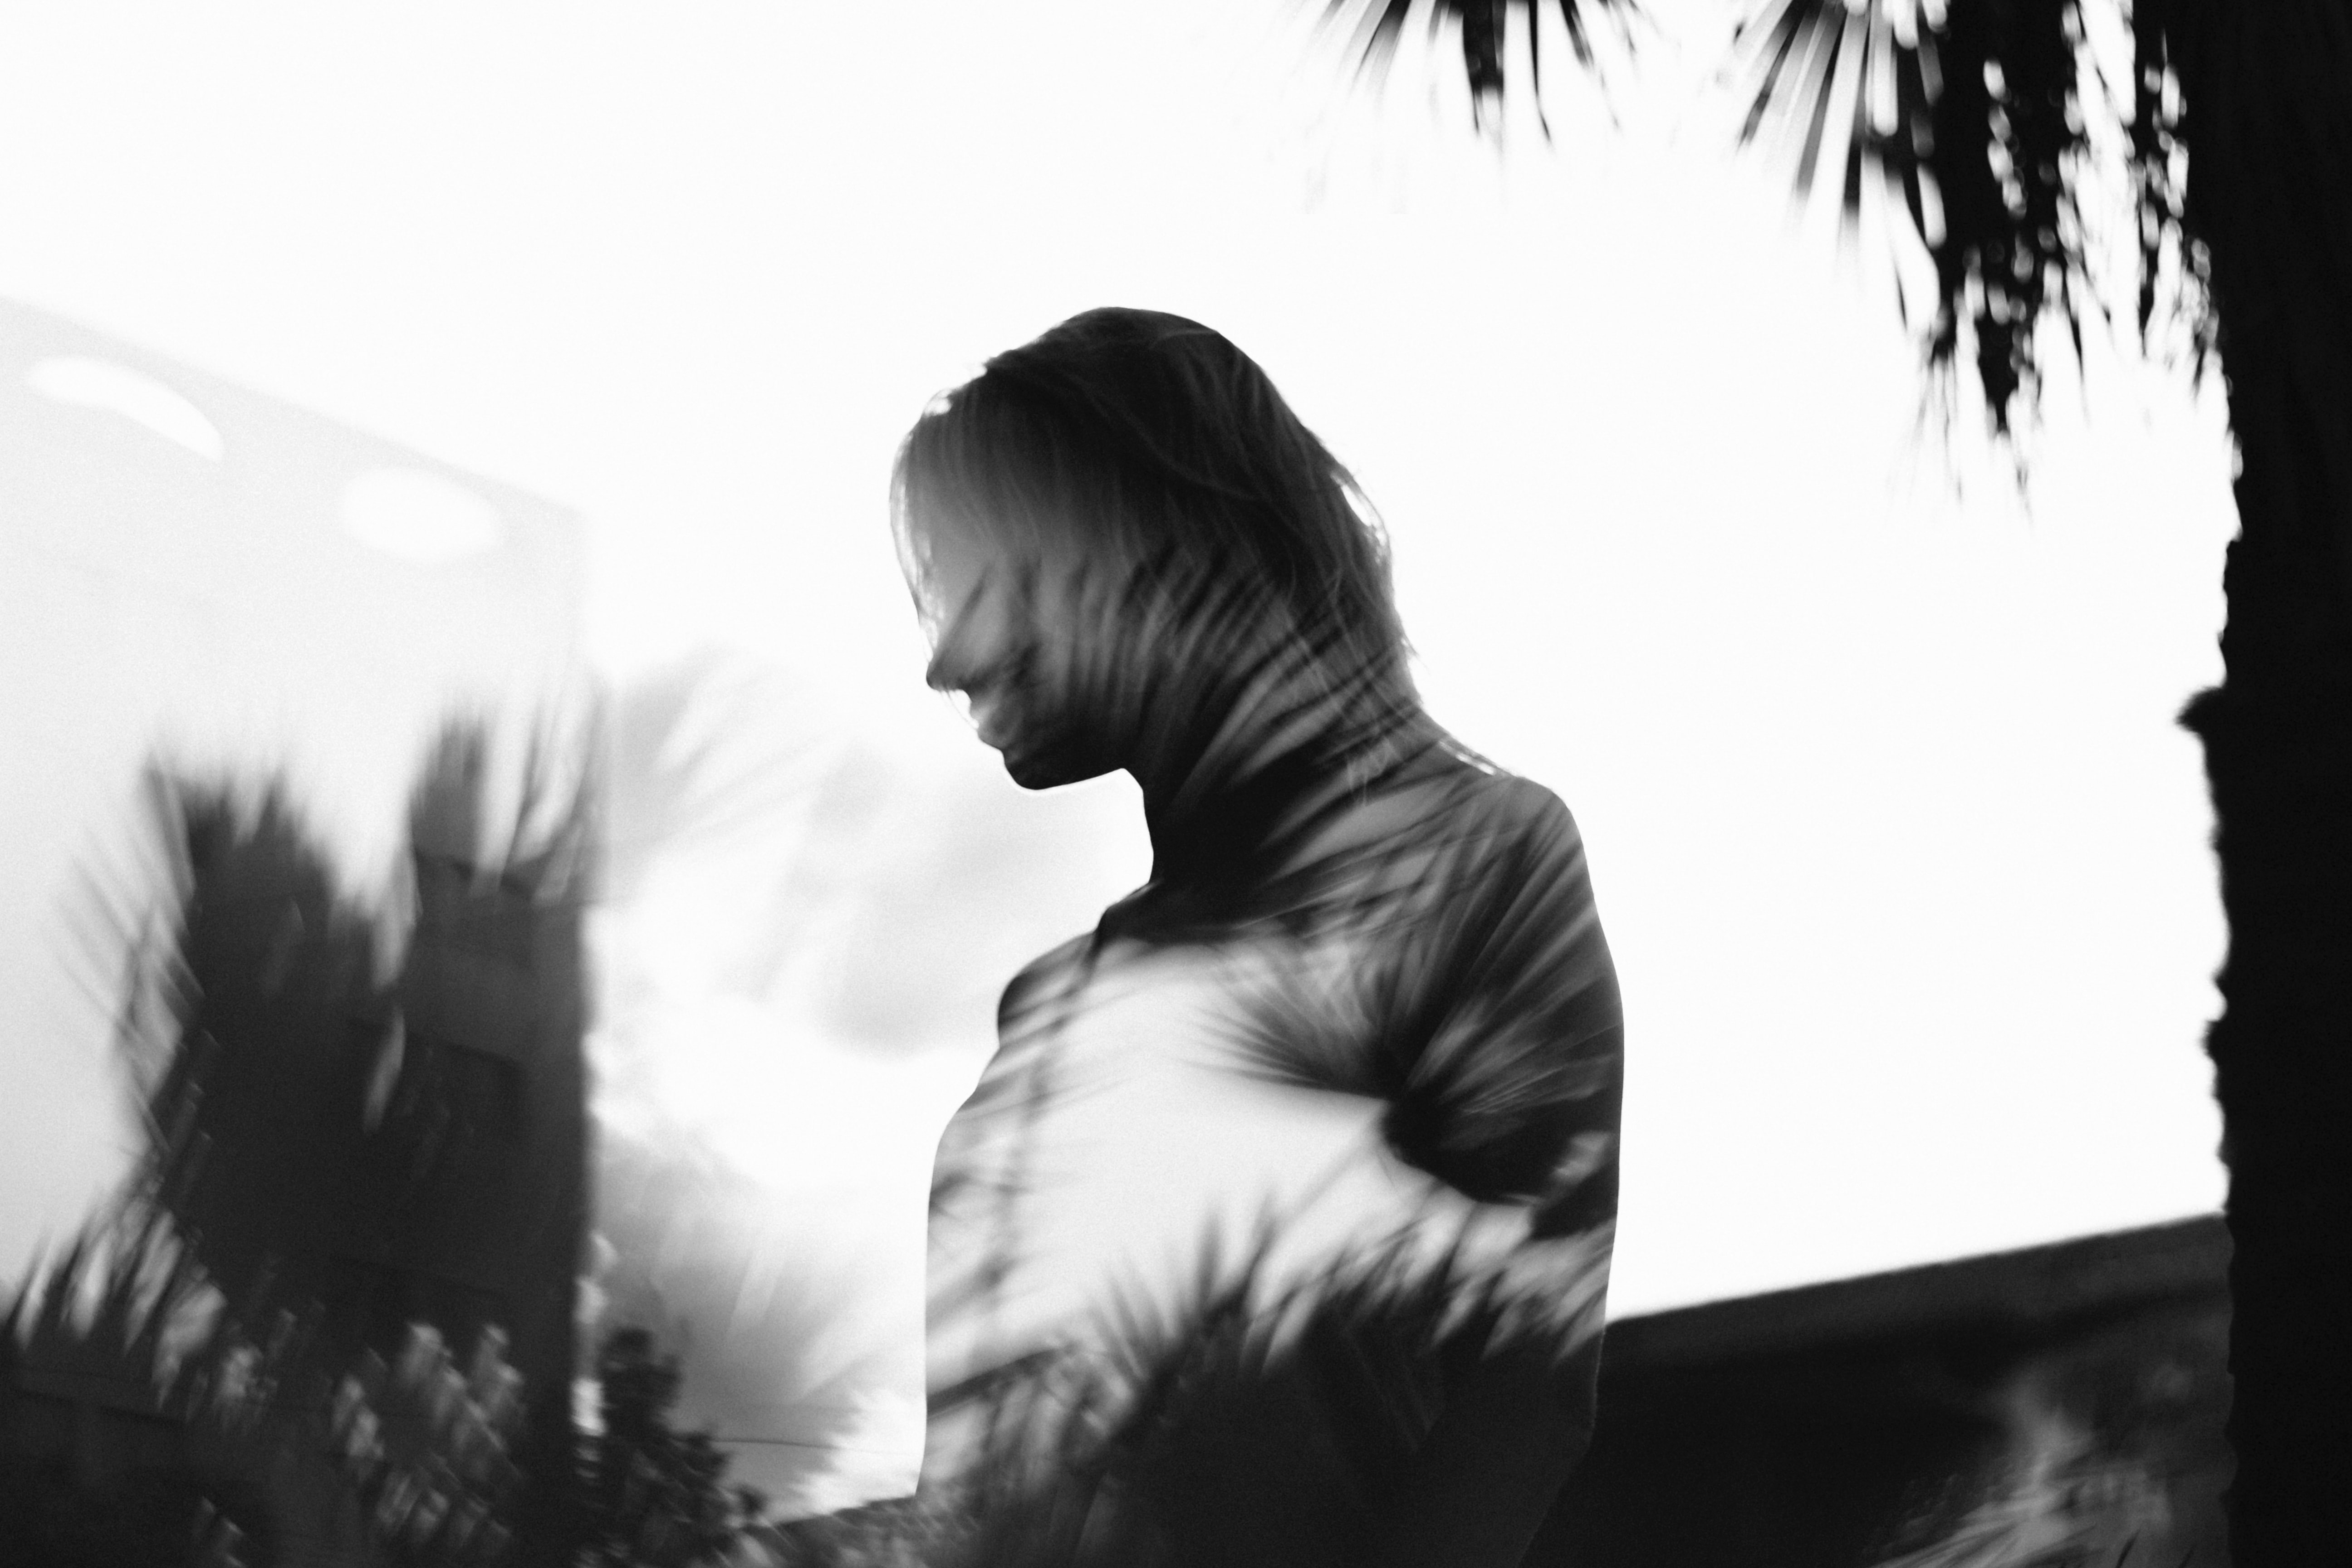 silhouette man with layered palm tree photograph